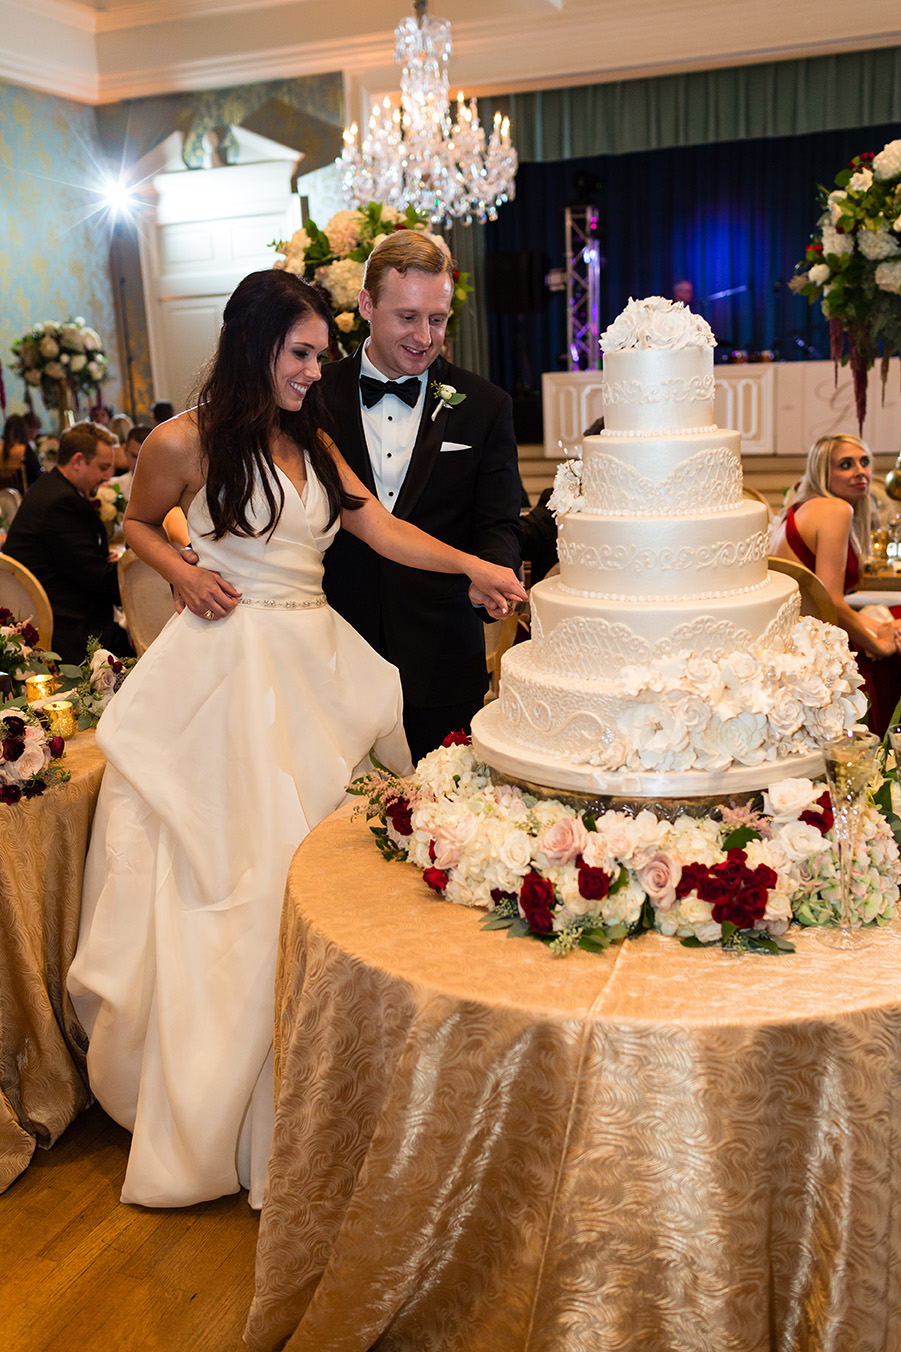 houston wedding, wedding cake, cake cutting, edible designs